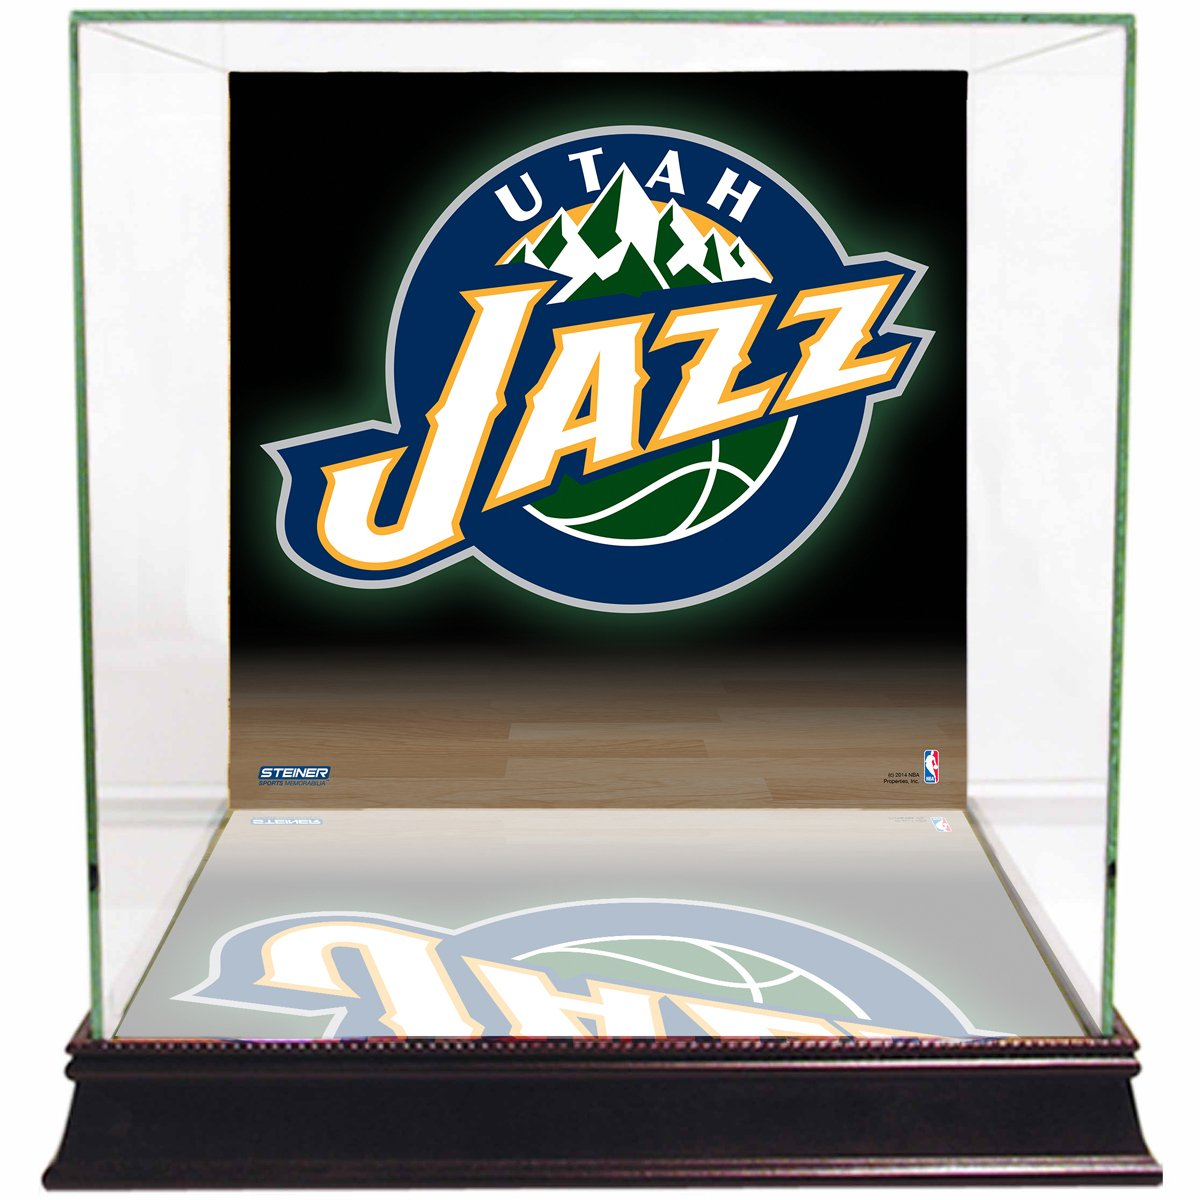 NBA Utah Jazz Glass Basketball Display Case with Team Logo Background by Steiner Sports